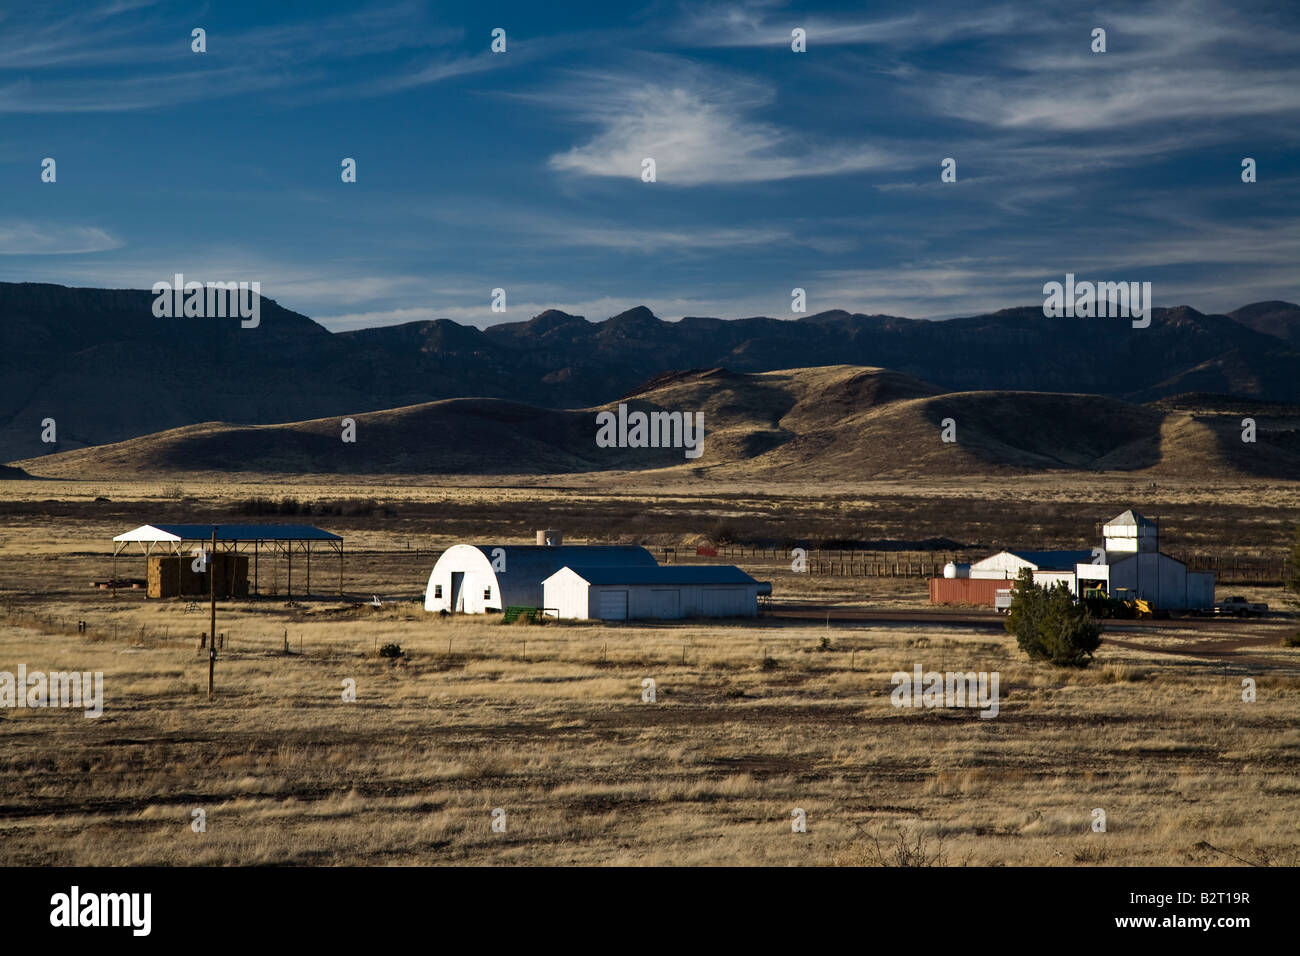 Arizona cochise county cochise - Ranch And Wild Open Space In Cochise County Arizona Usa